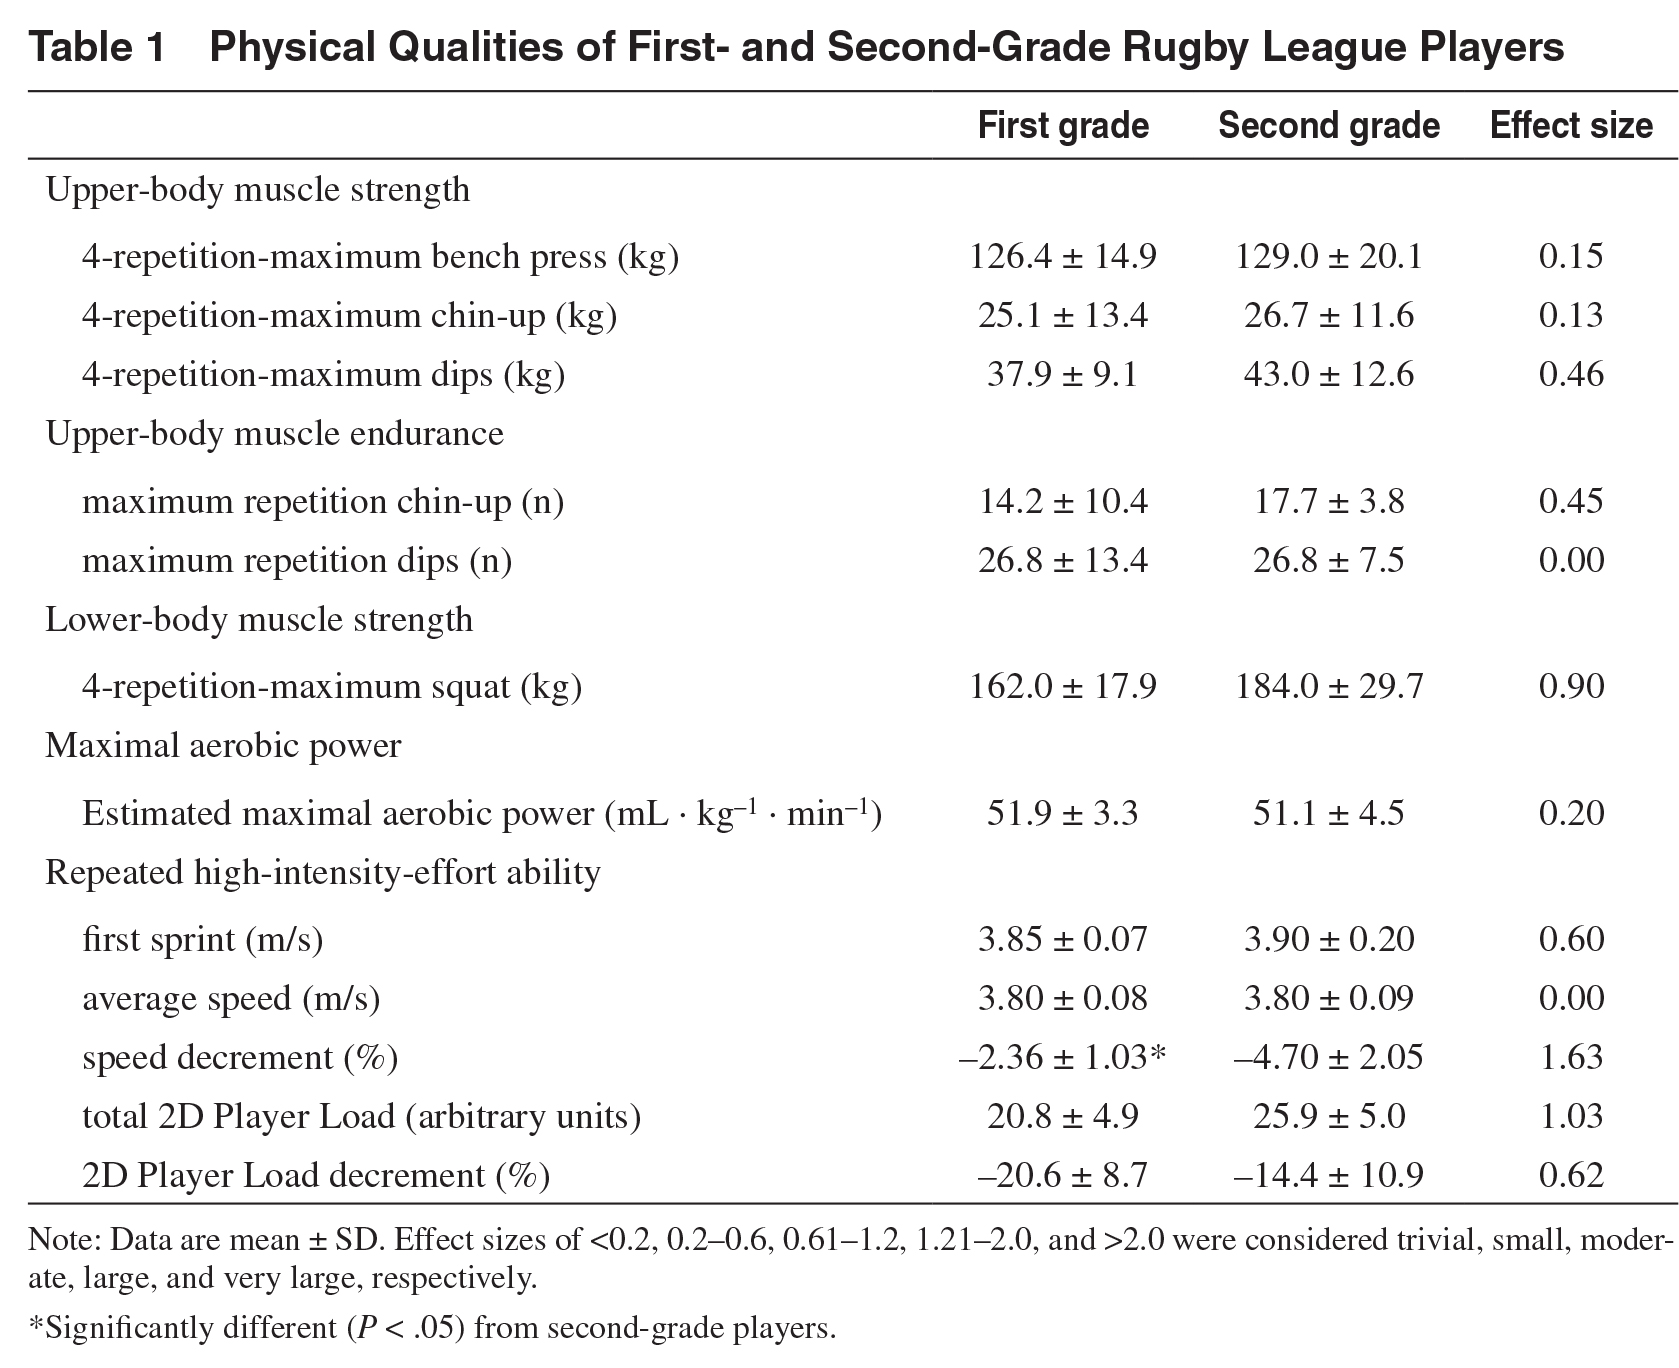 Physical-qualities-of-first-and-second-grade-rugby-players